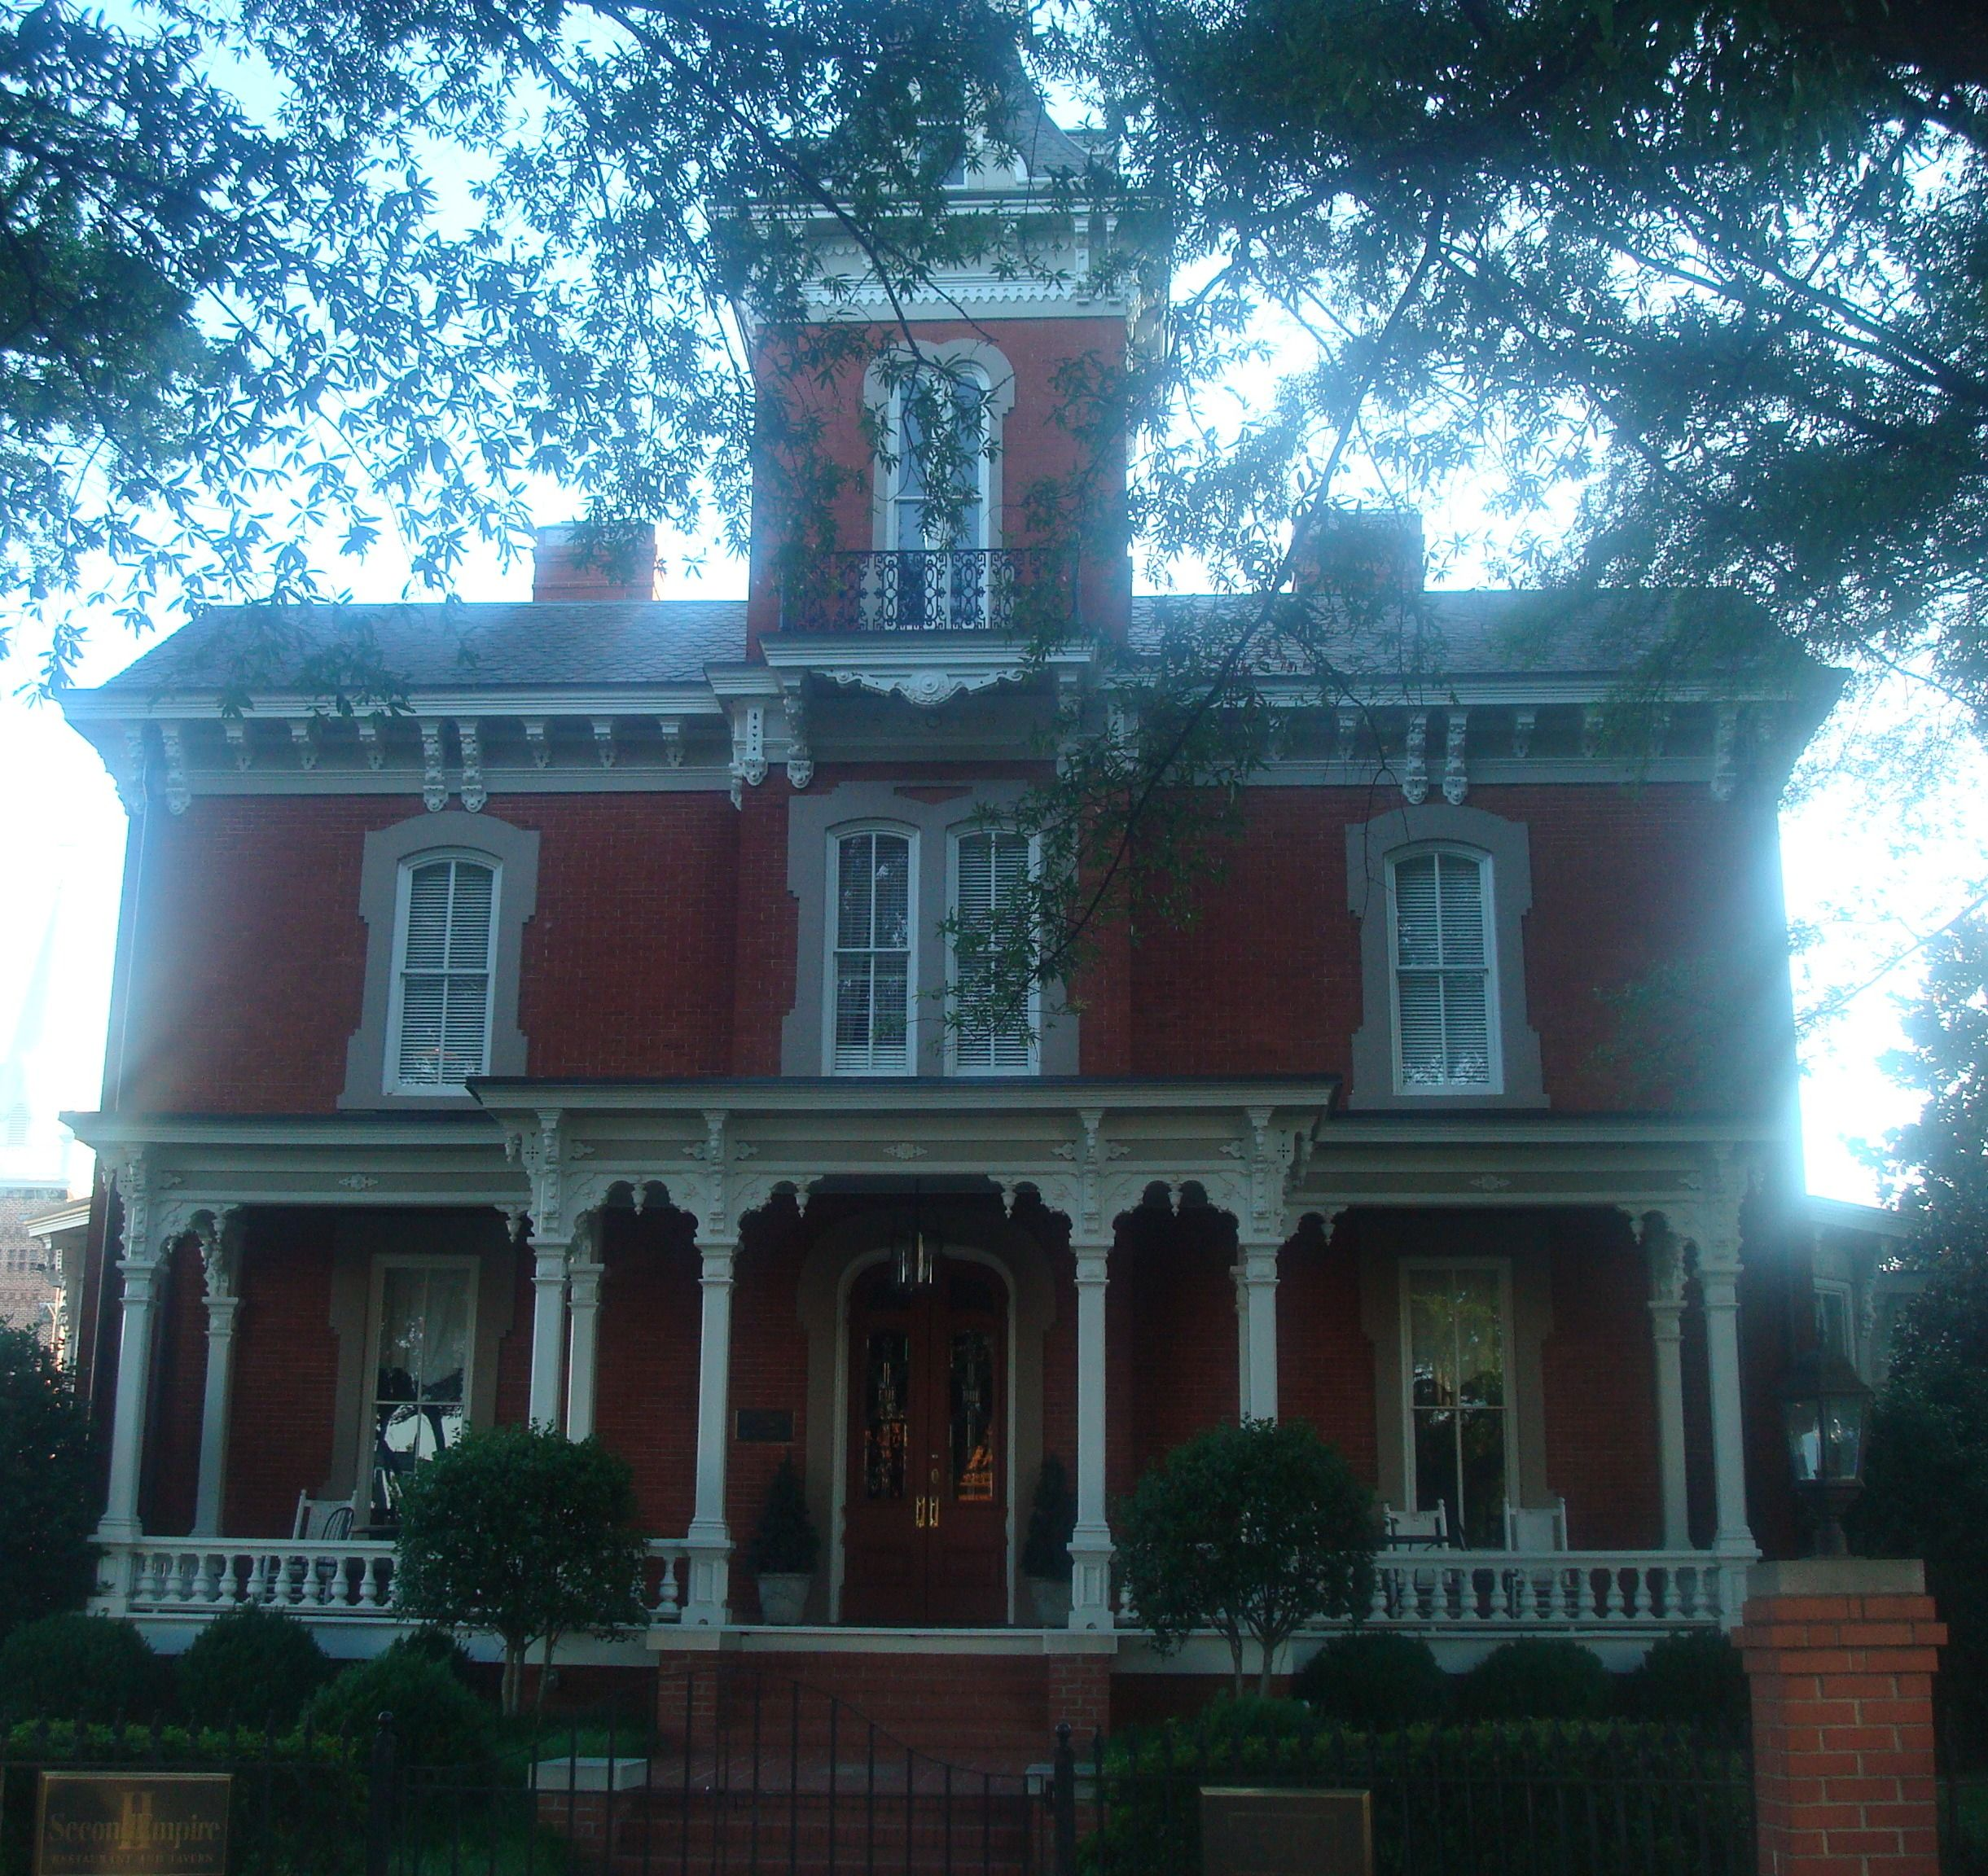 The Dodd-Hinsdale House in Downtown Raleigh, N.C.